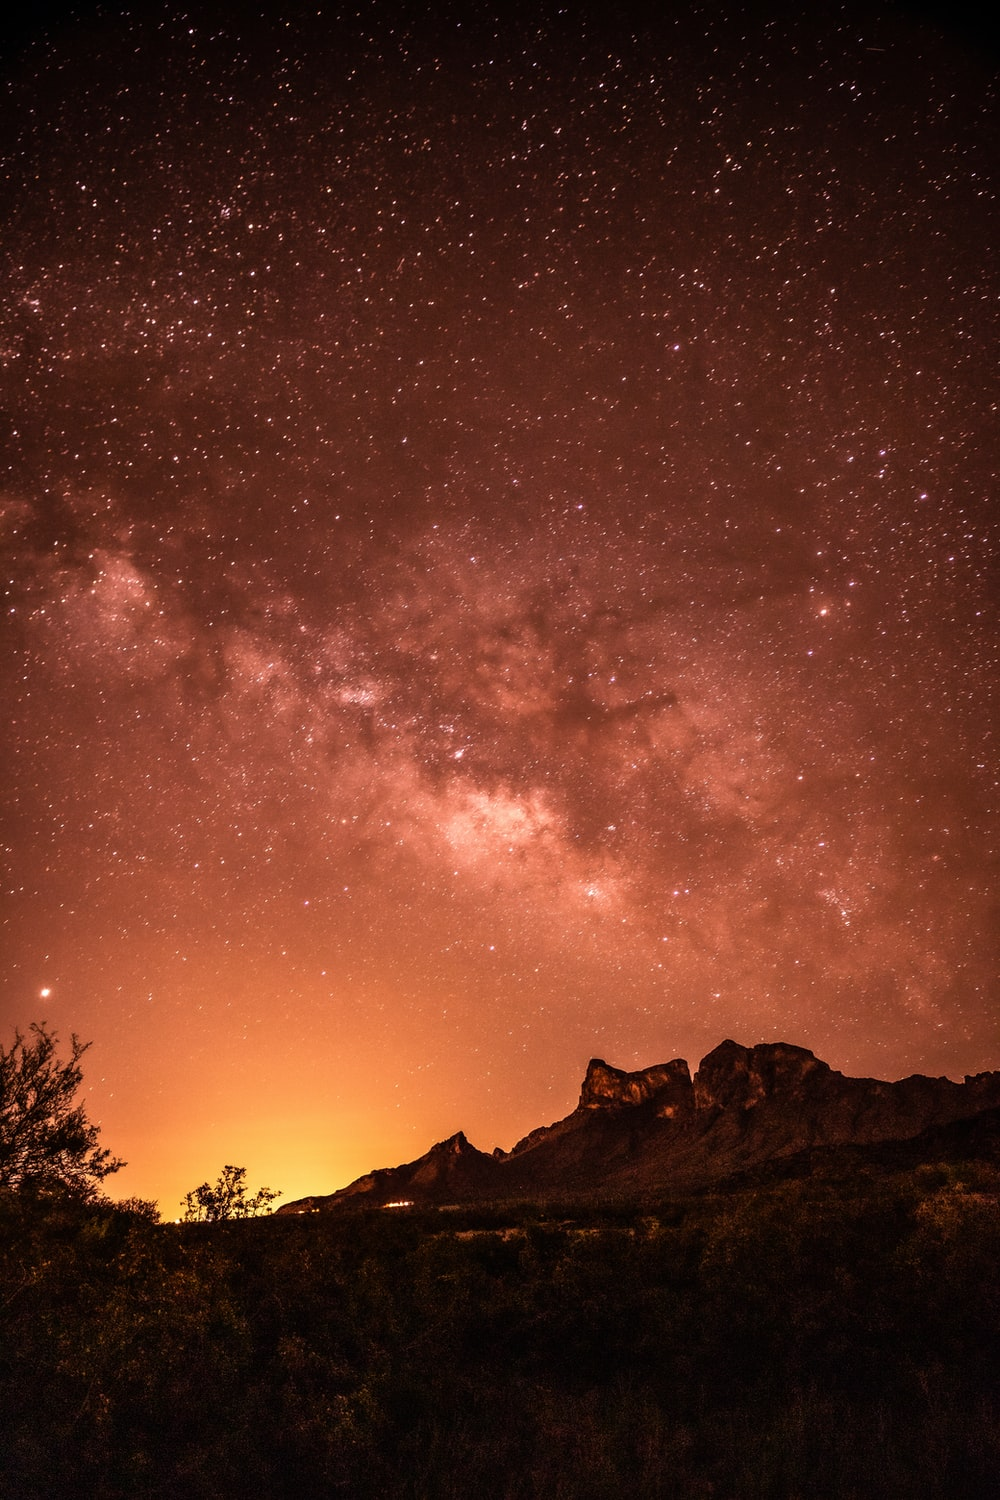 silhouette of trees and mountain under starry night